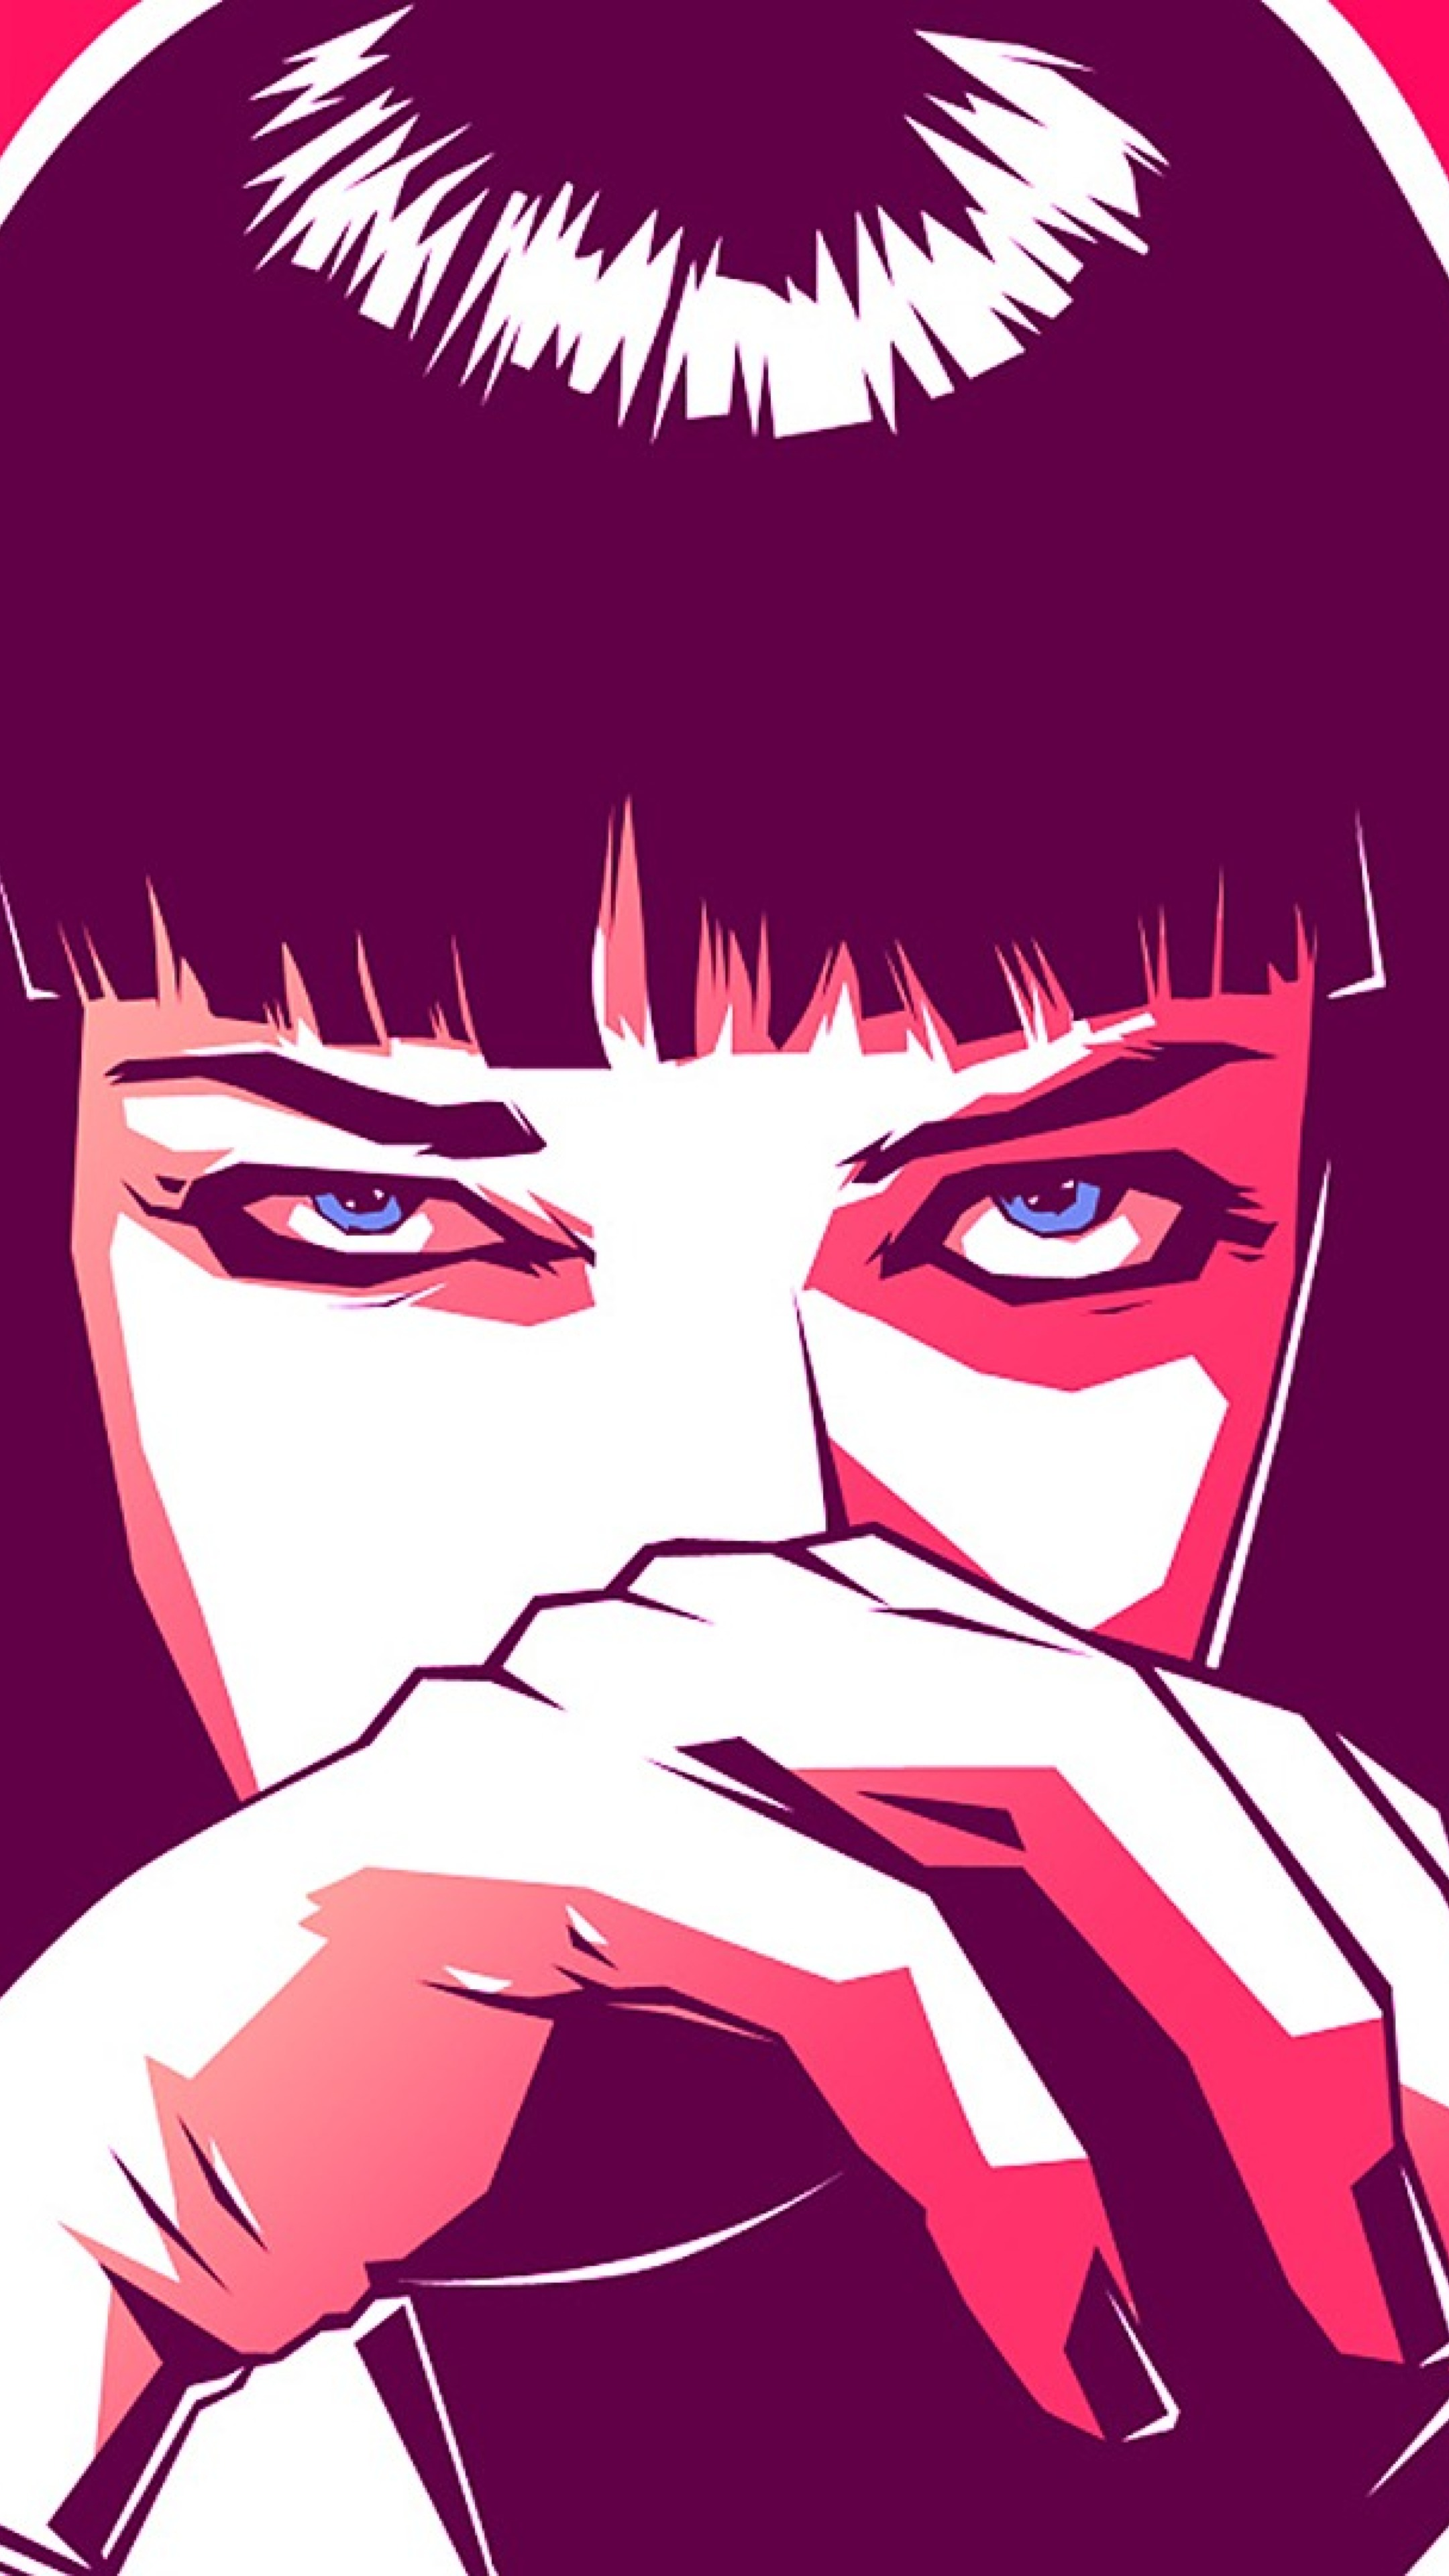 mia wallace pulp fiction movie artwork full hd wallpaper